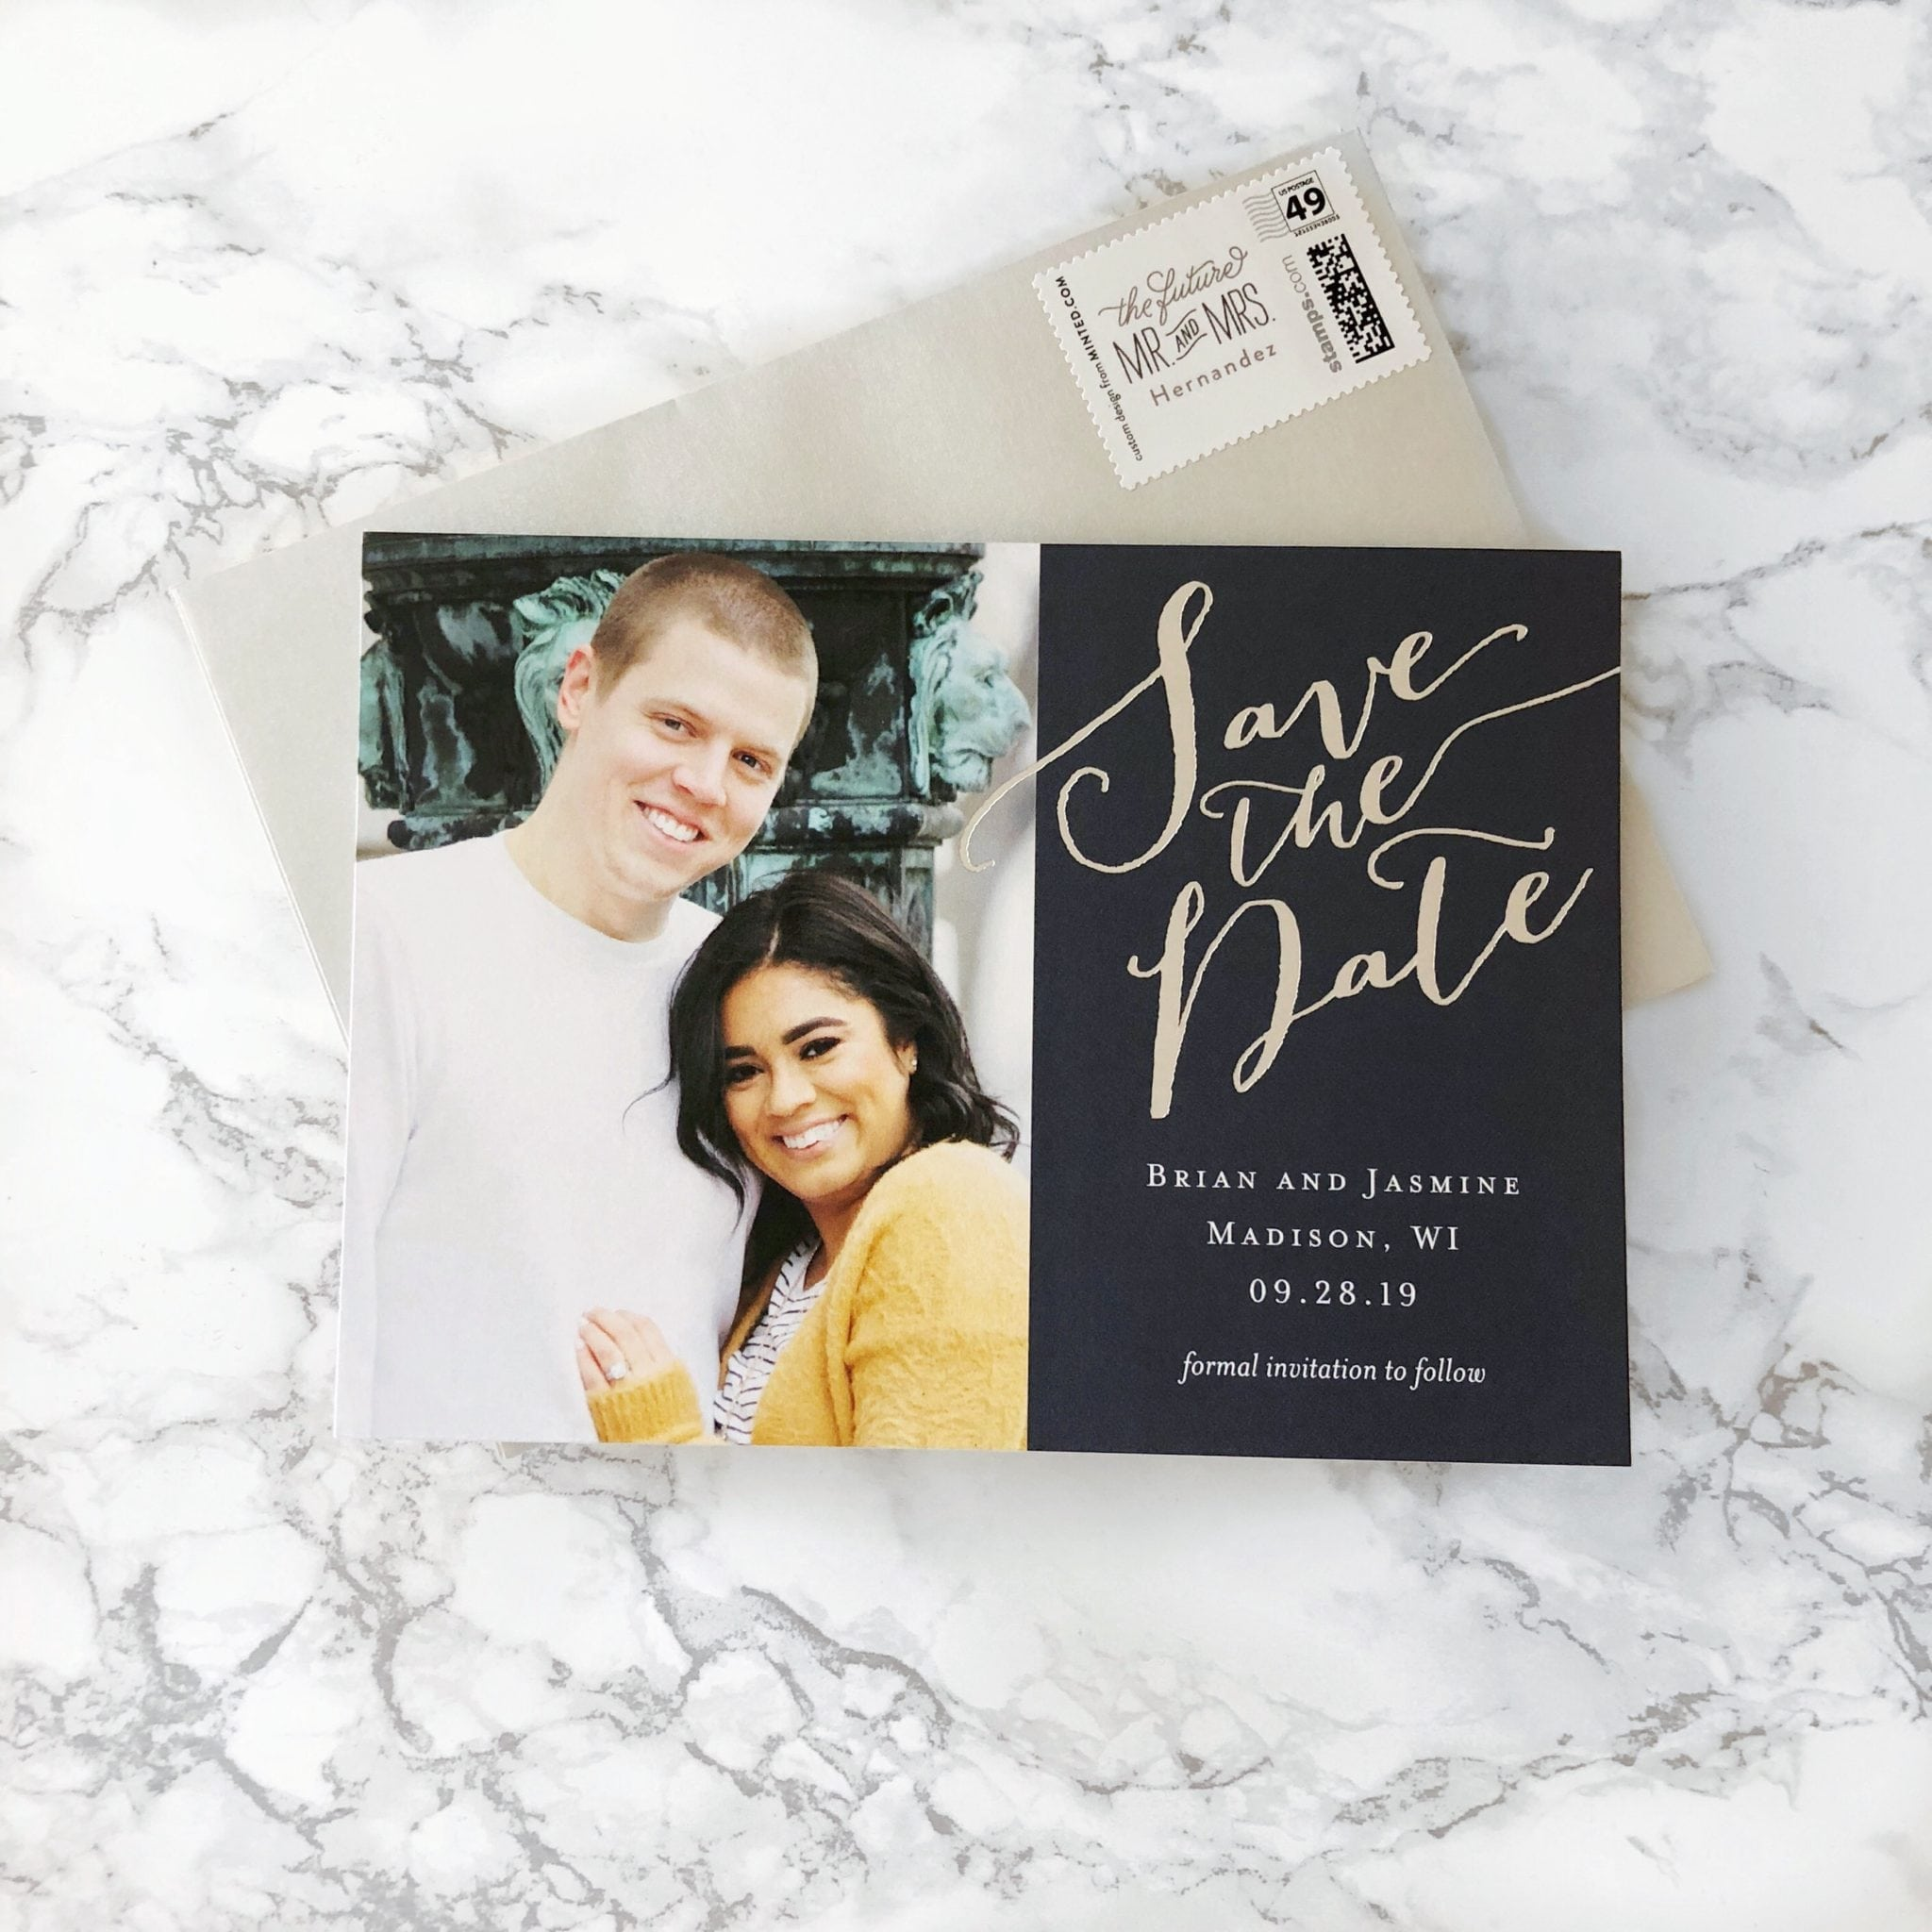 First Look at Our Save the Date Cards